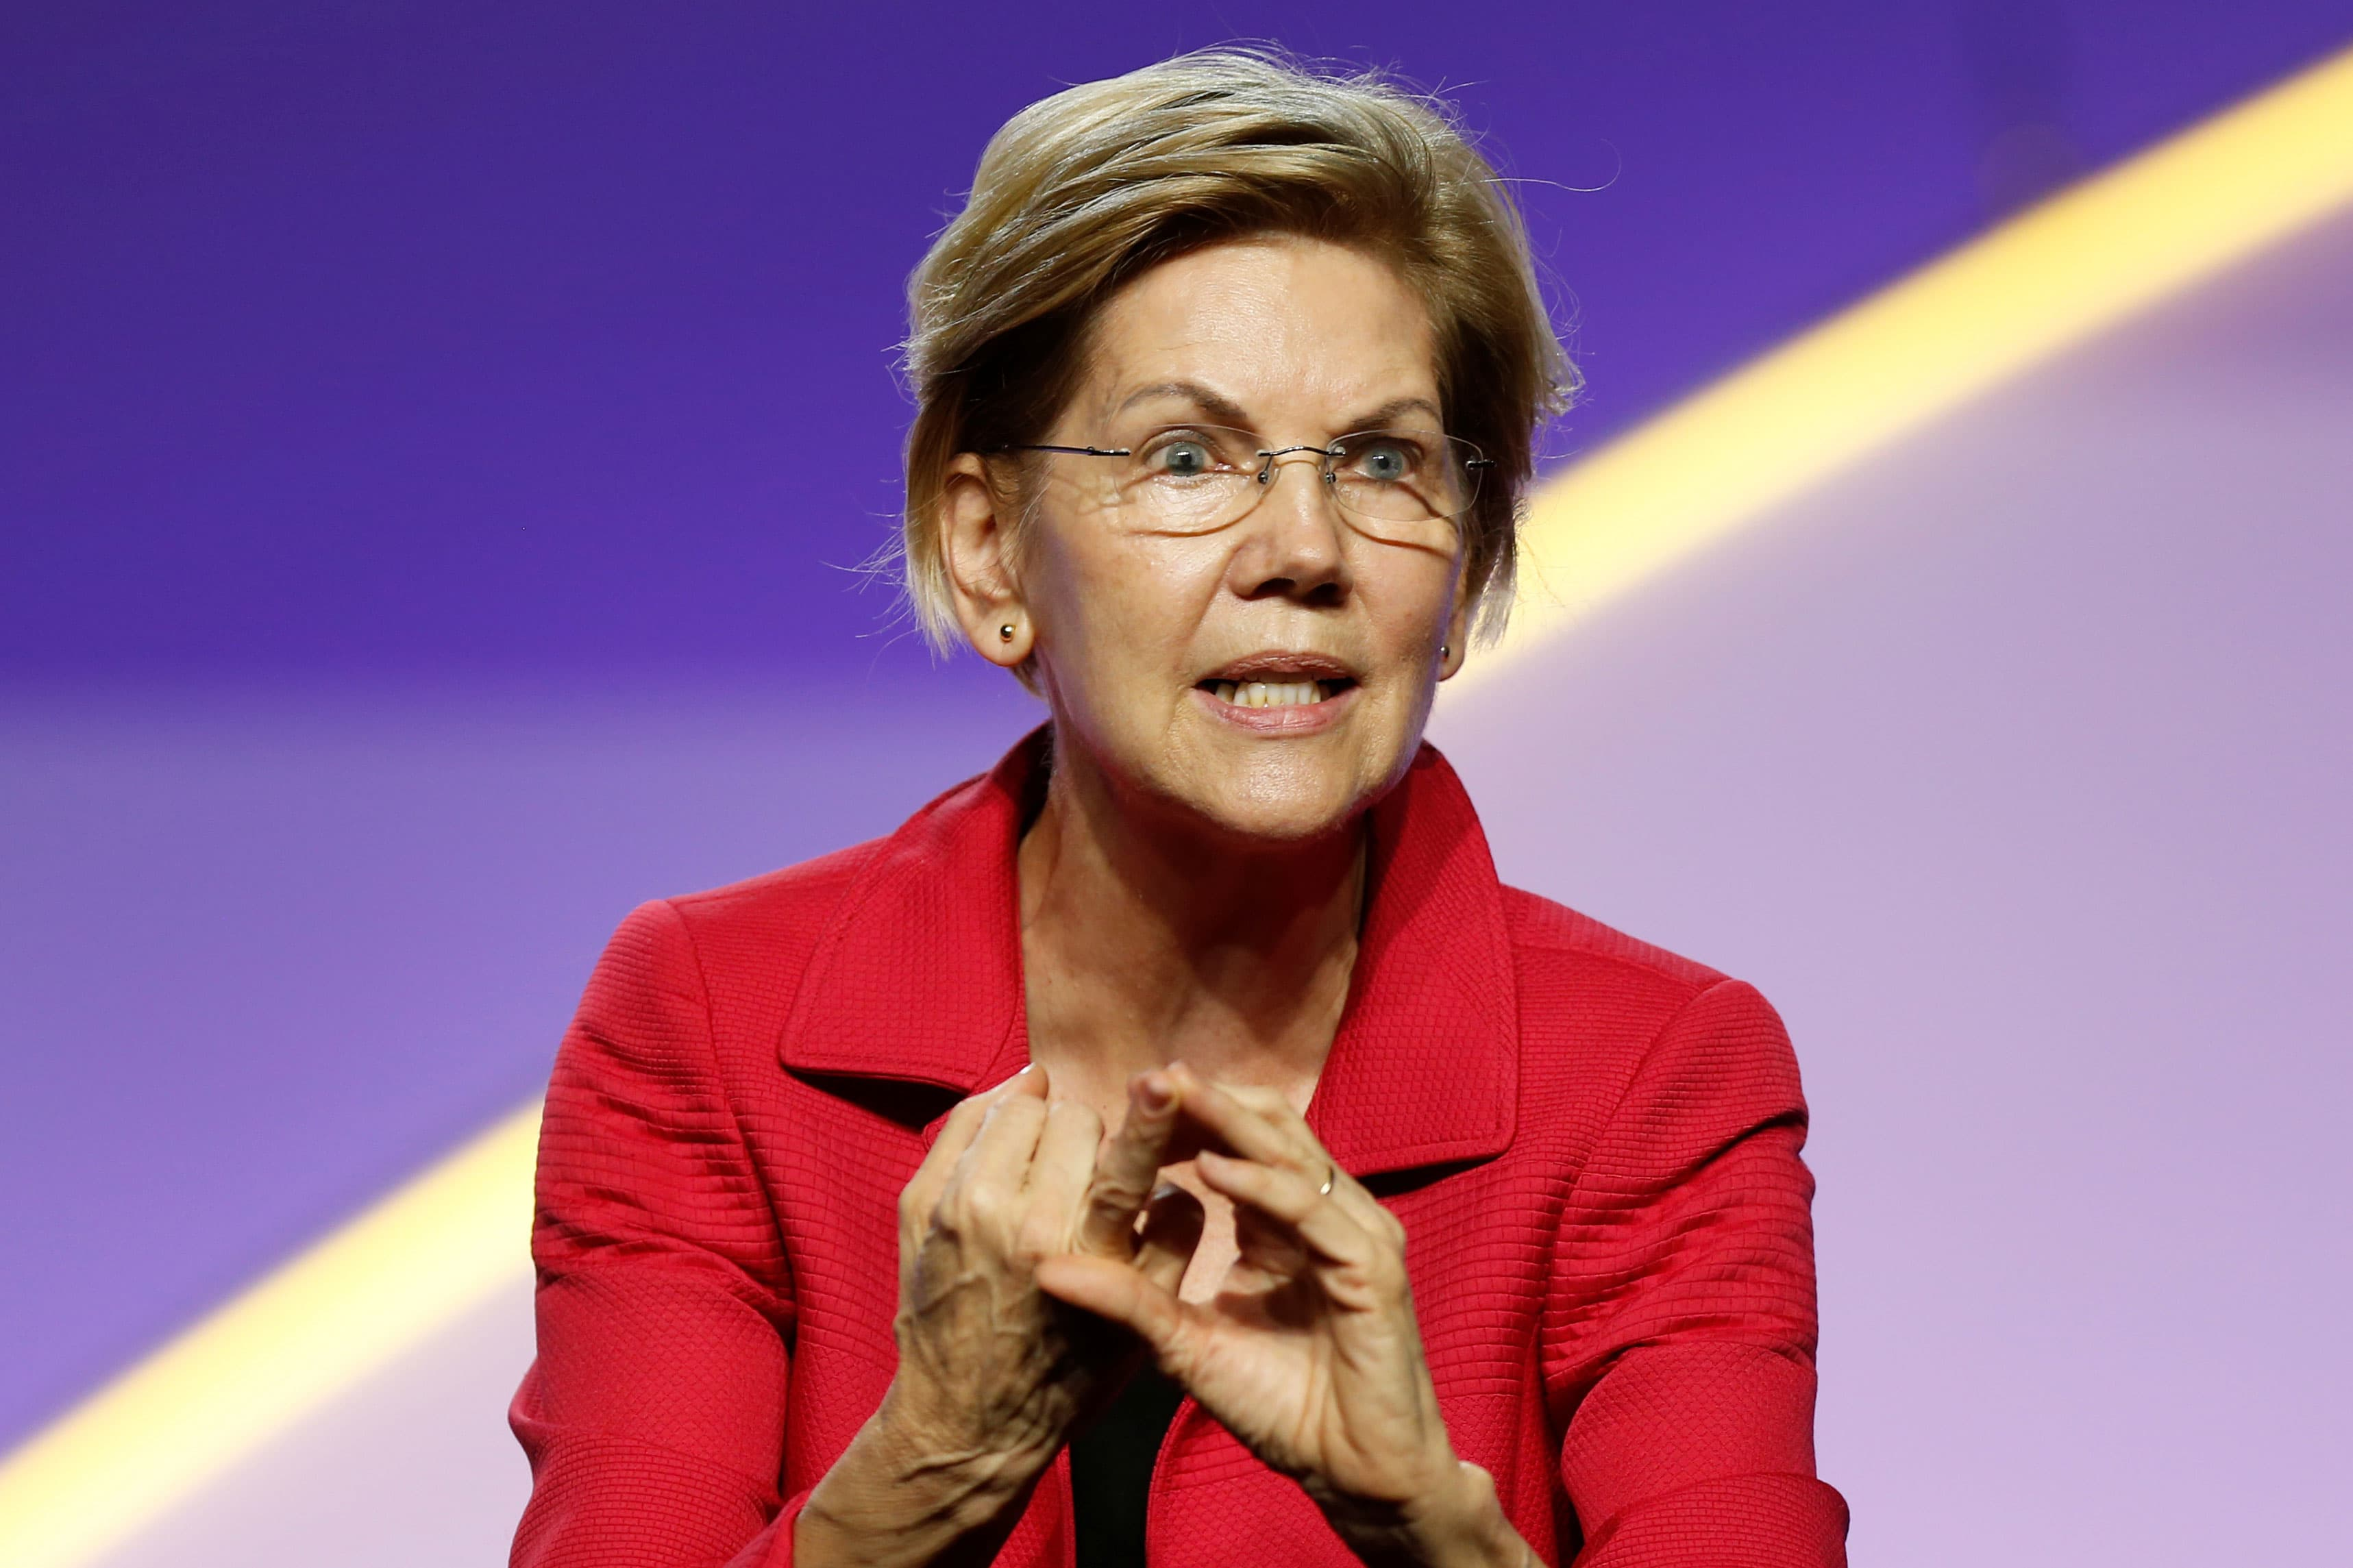 Idea of Warren presidency frightens investors at conference: 'She's not my candidate of choice'